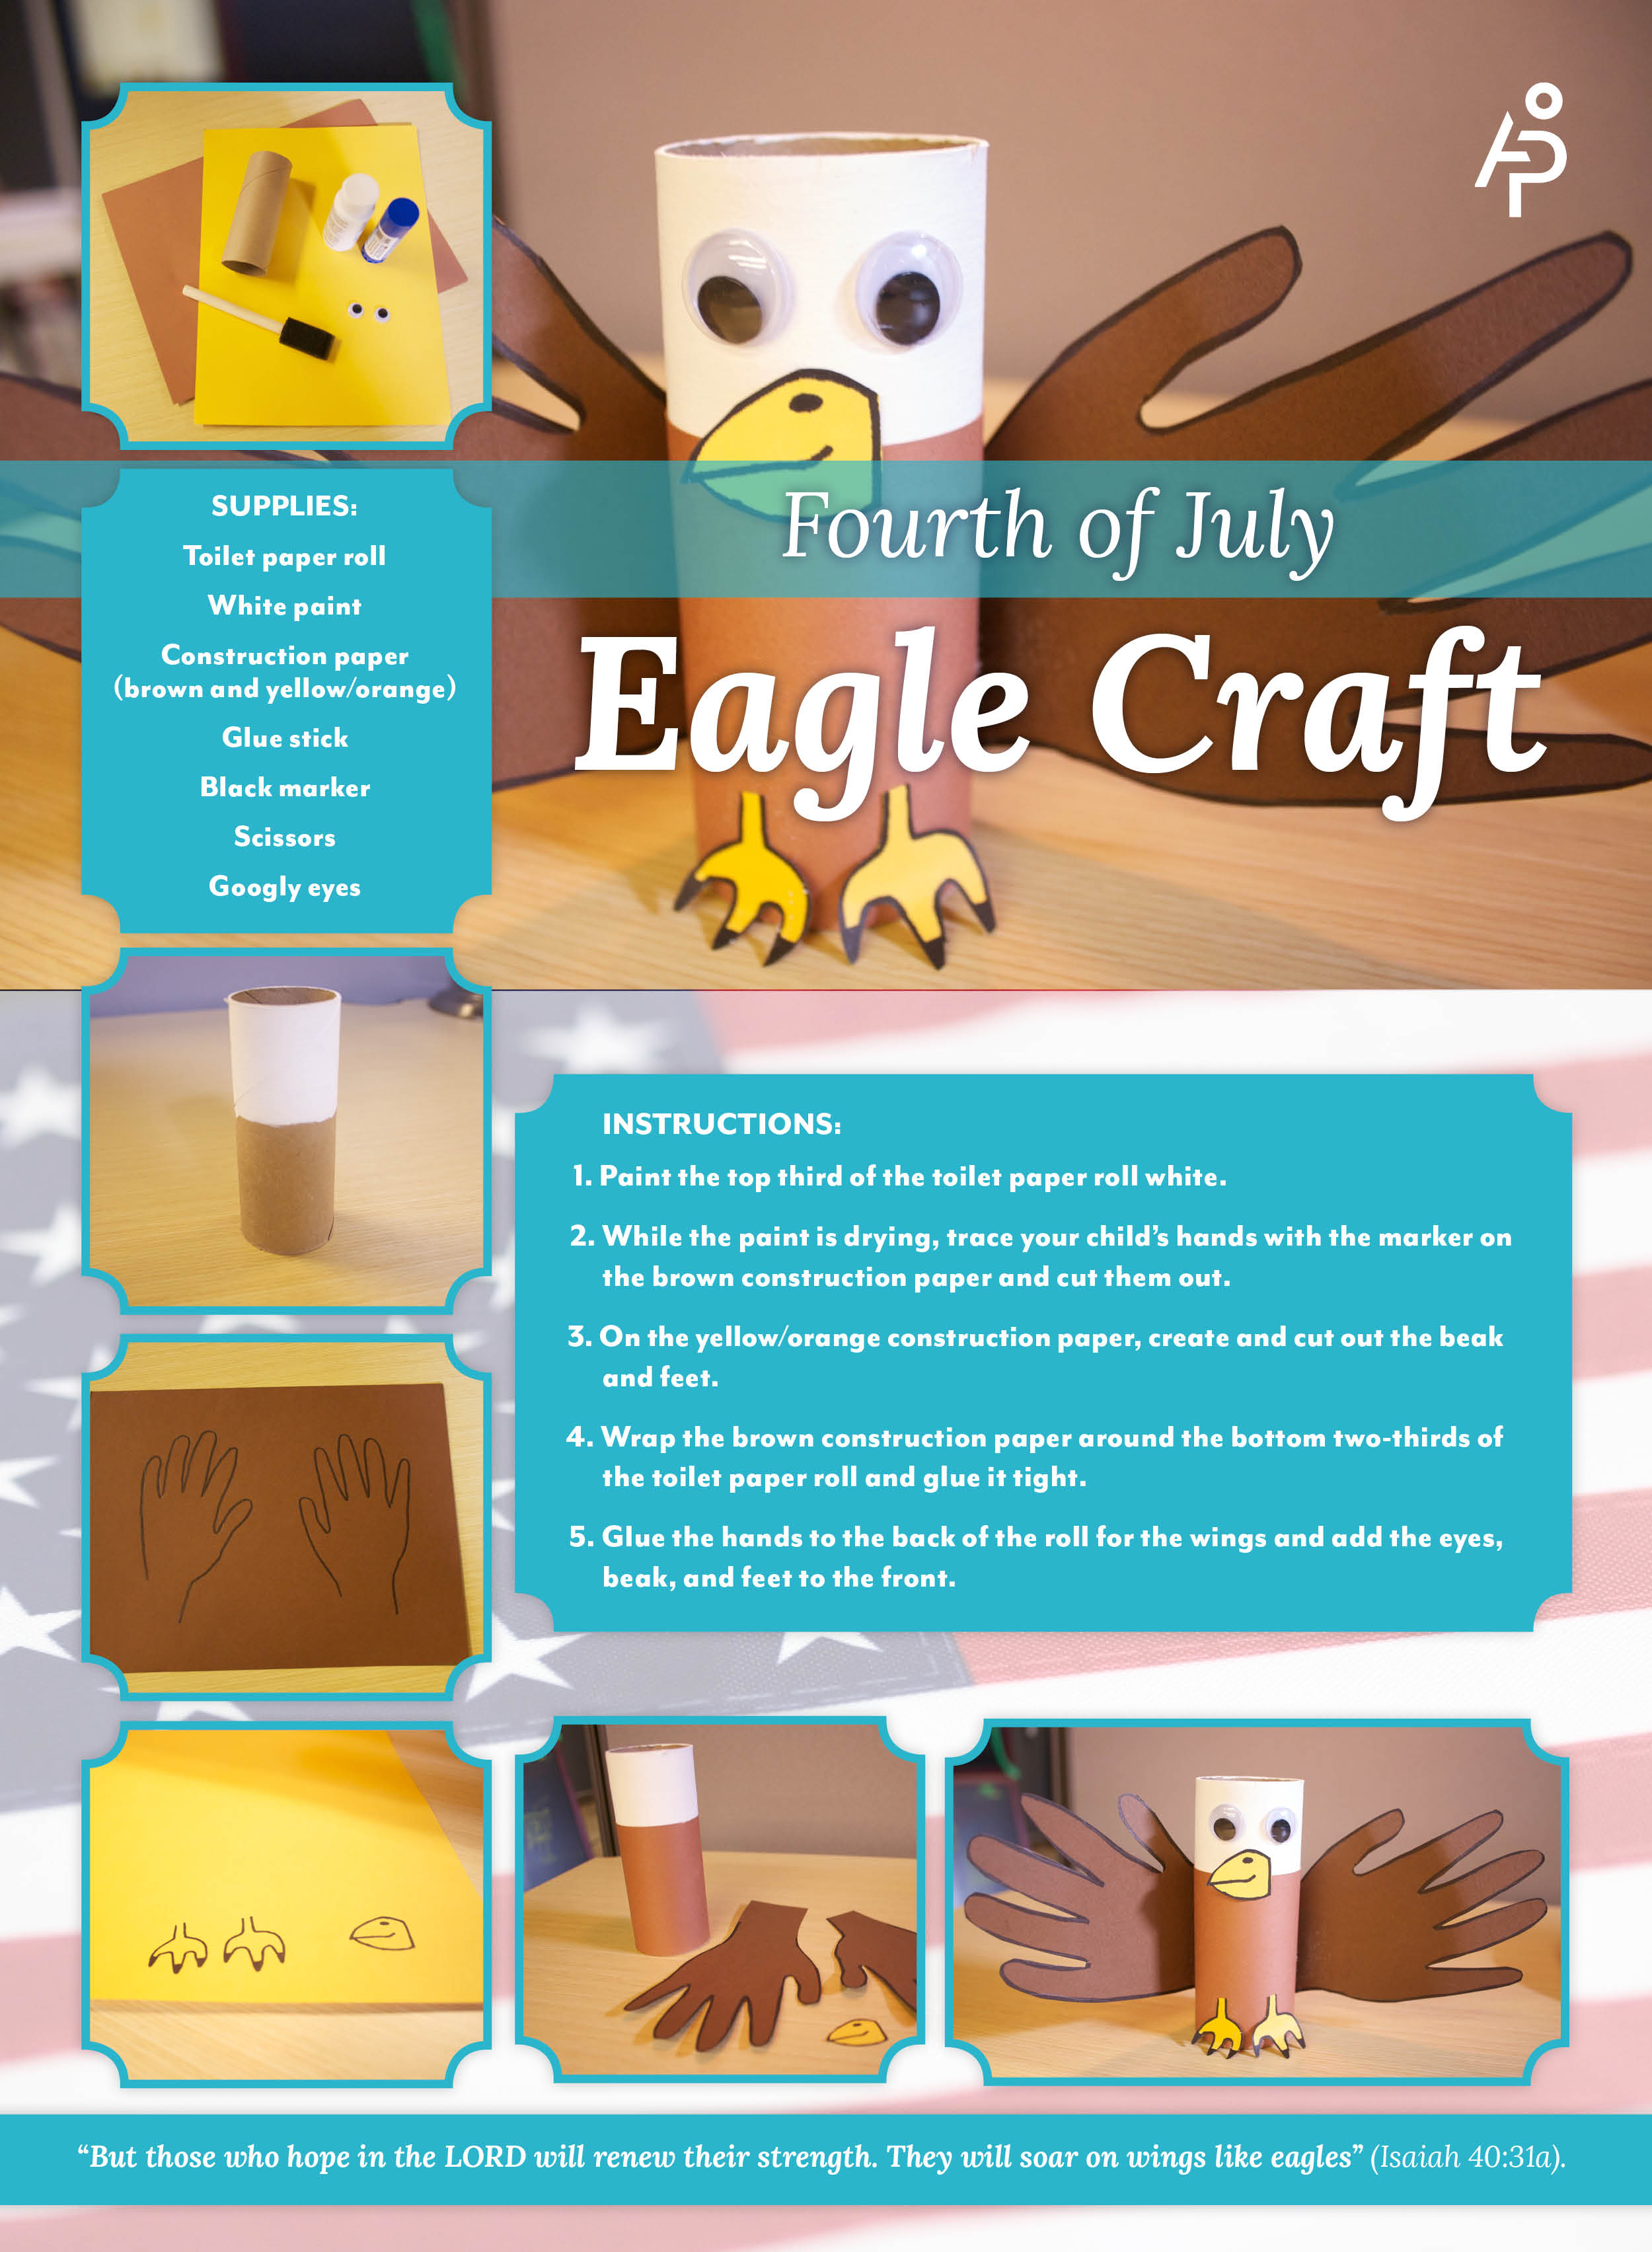 Fourth of July Eagle Craft